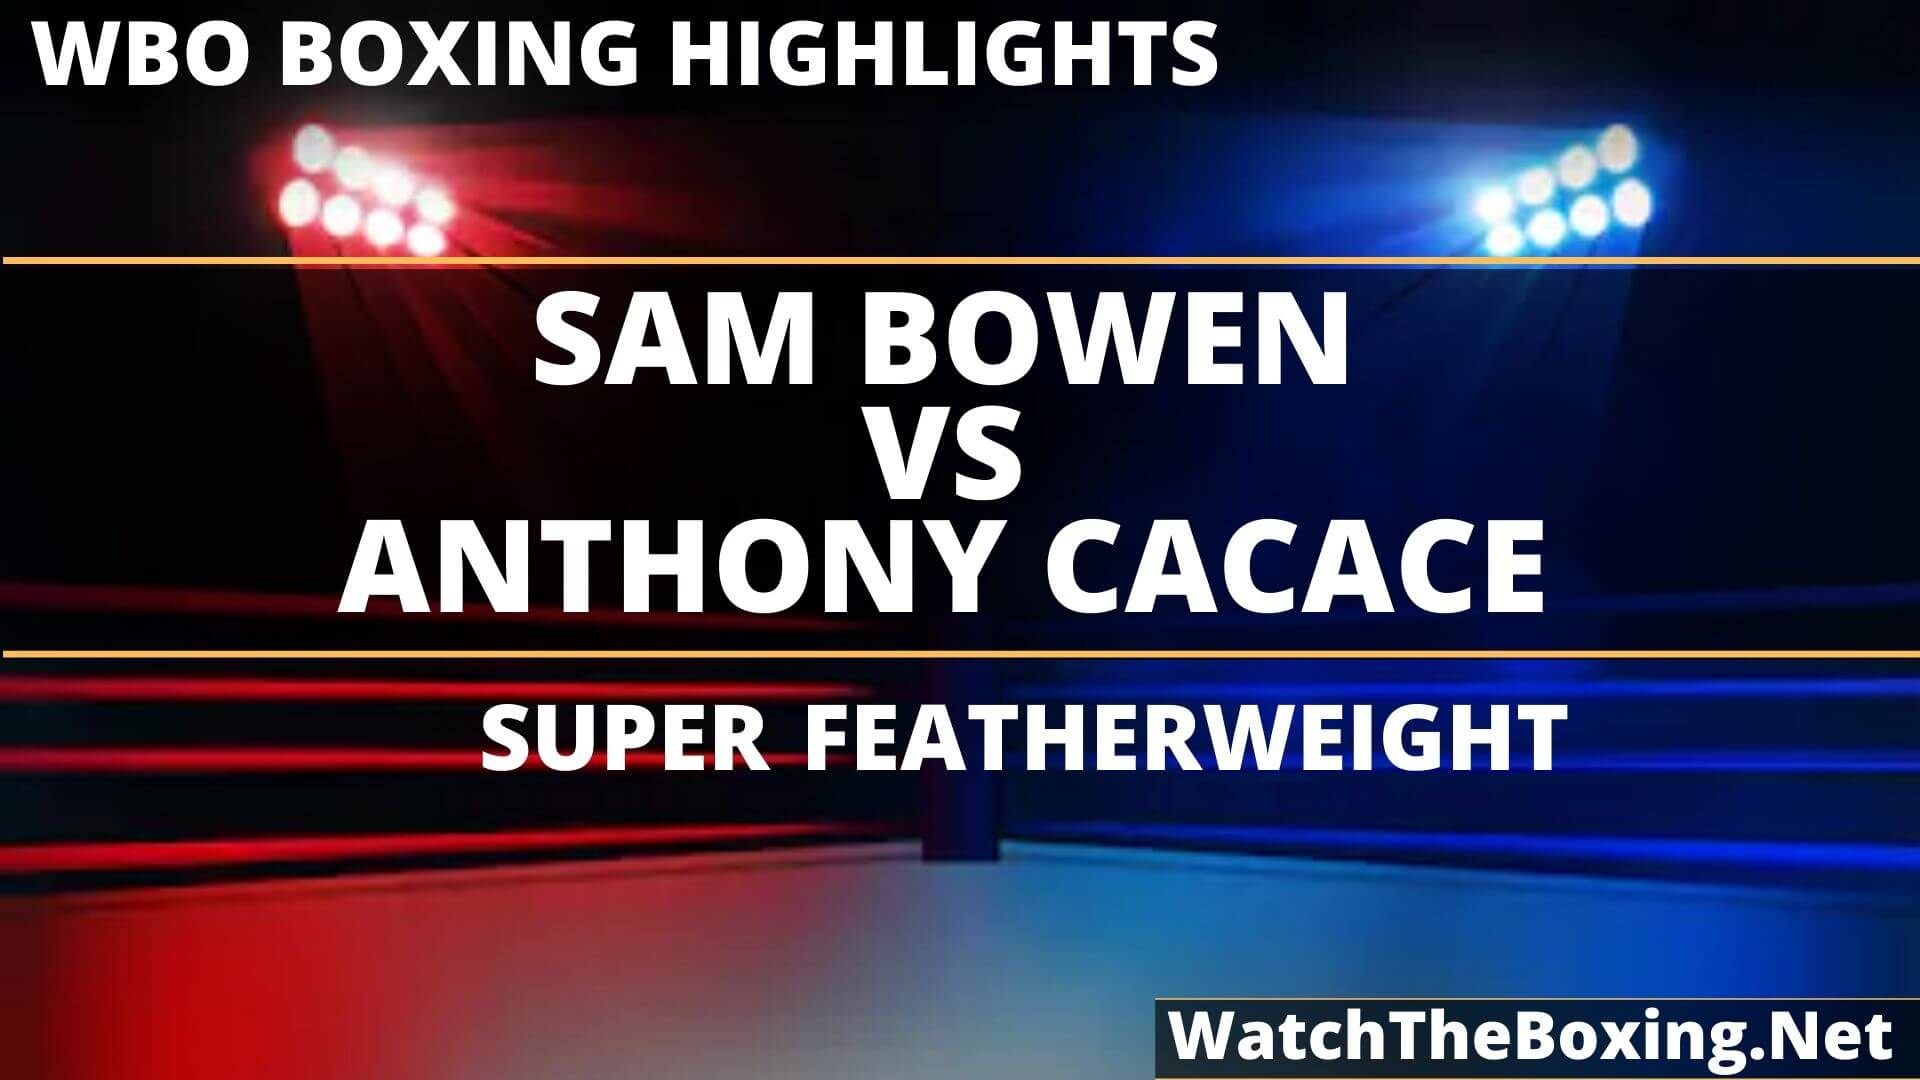 Sam Bowen Vs Anthony Cacace Highlights 2019